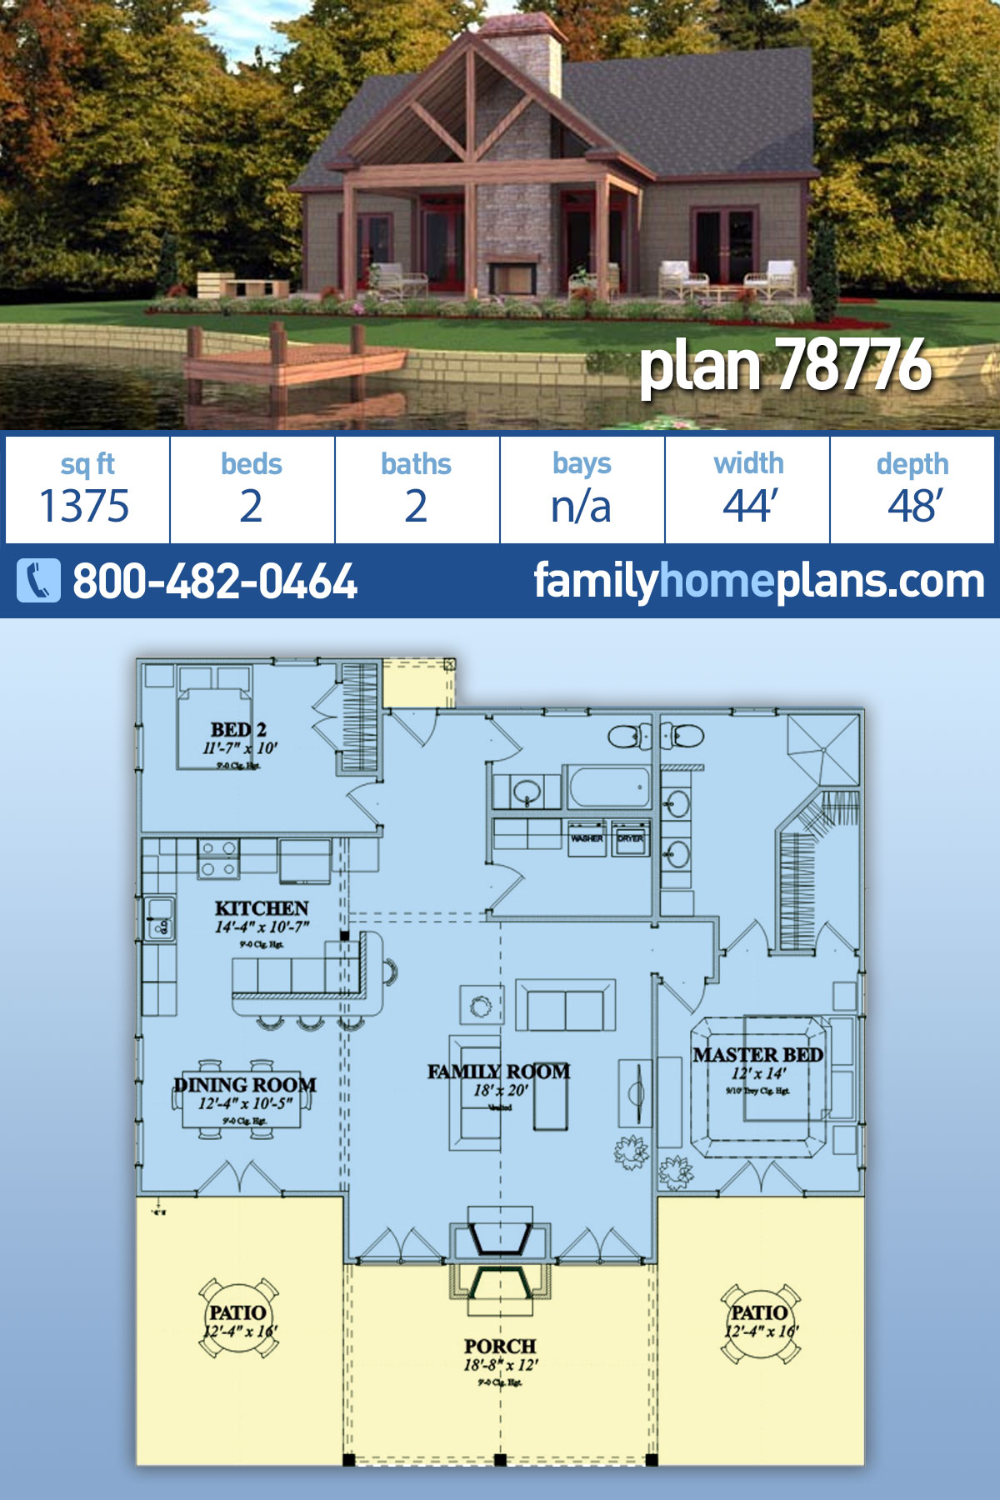 Bungalow Style House Plan 78776 With 2 Bed 2 Bath Vacation House Plans Bungalow Style House Plans Family House Plans